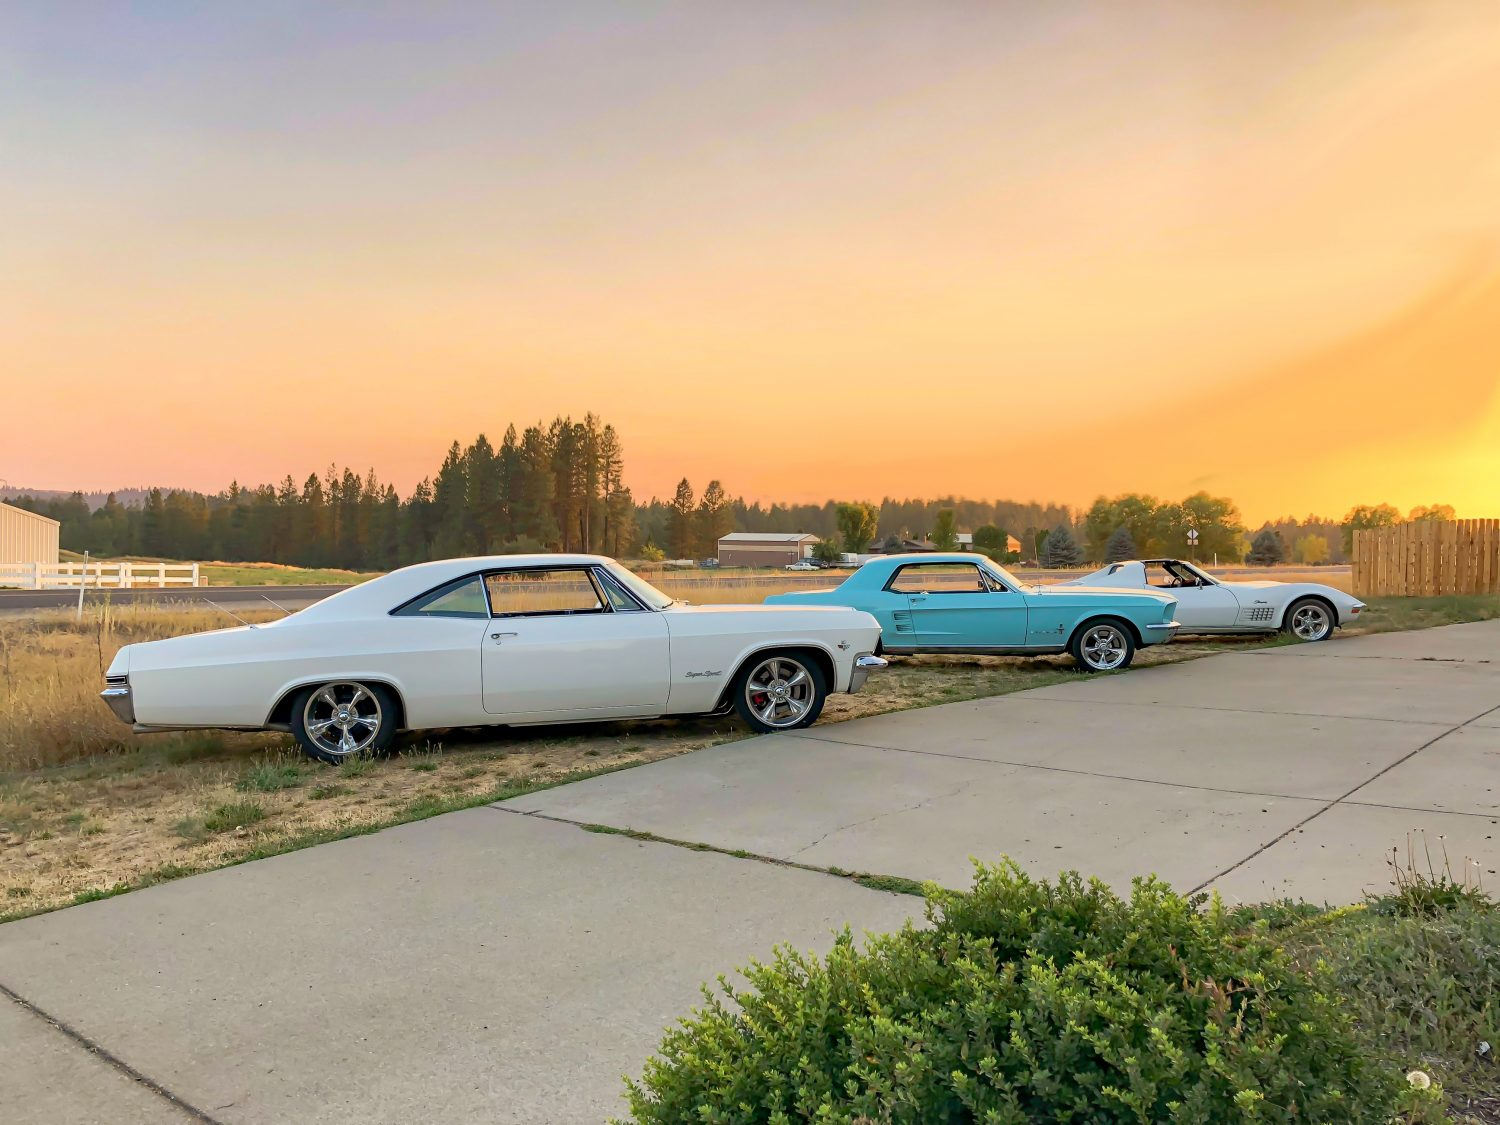 The Apple Doesn't Fall Far From The Tree With This Family Of Classic Car Enthusiasts